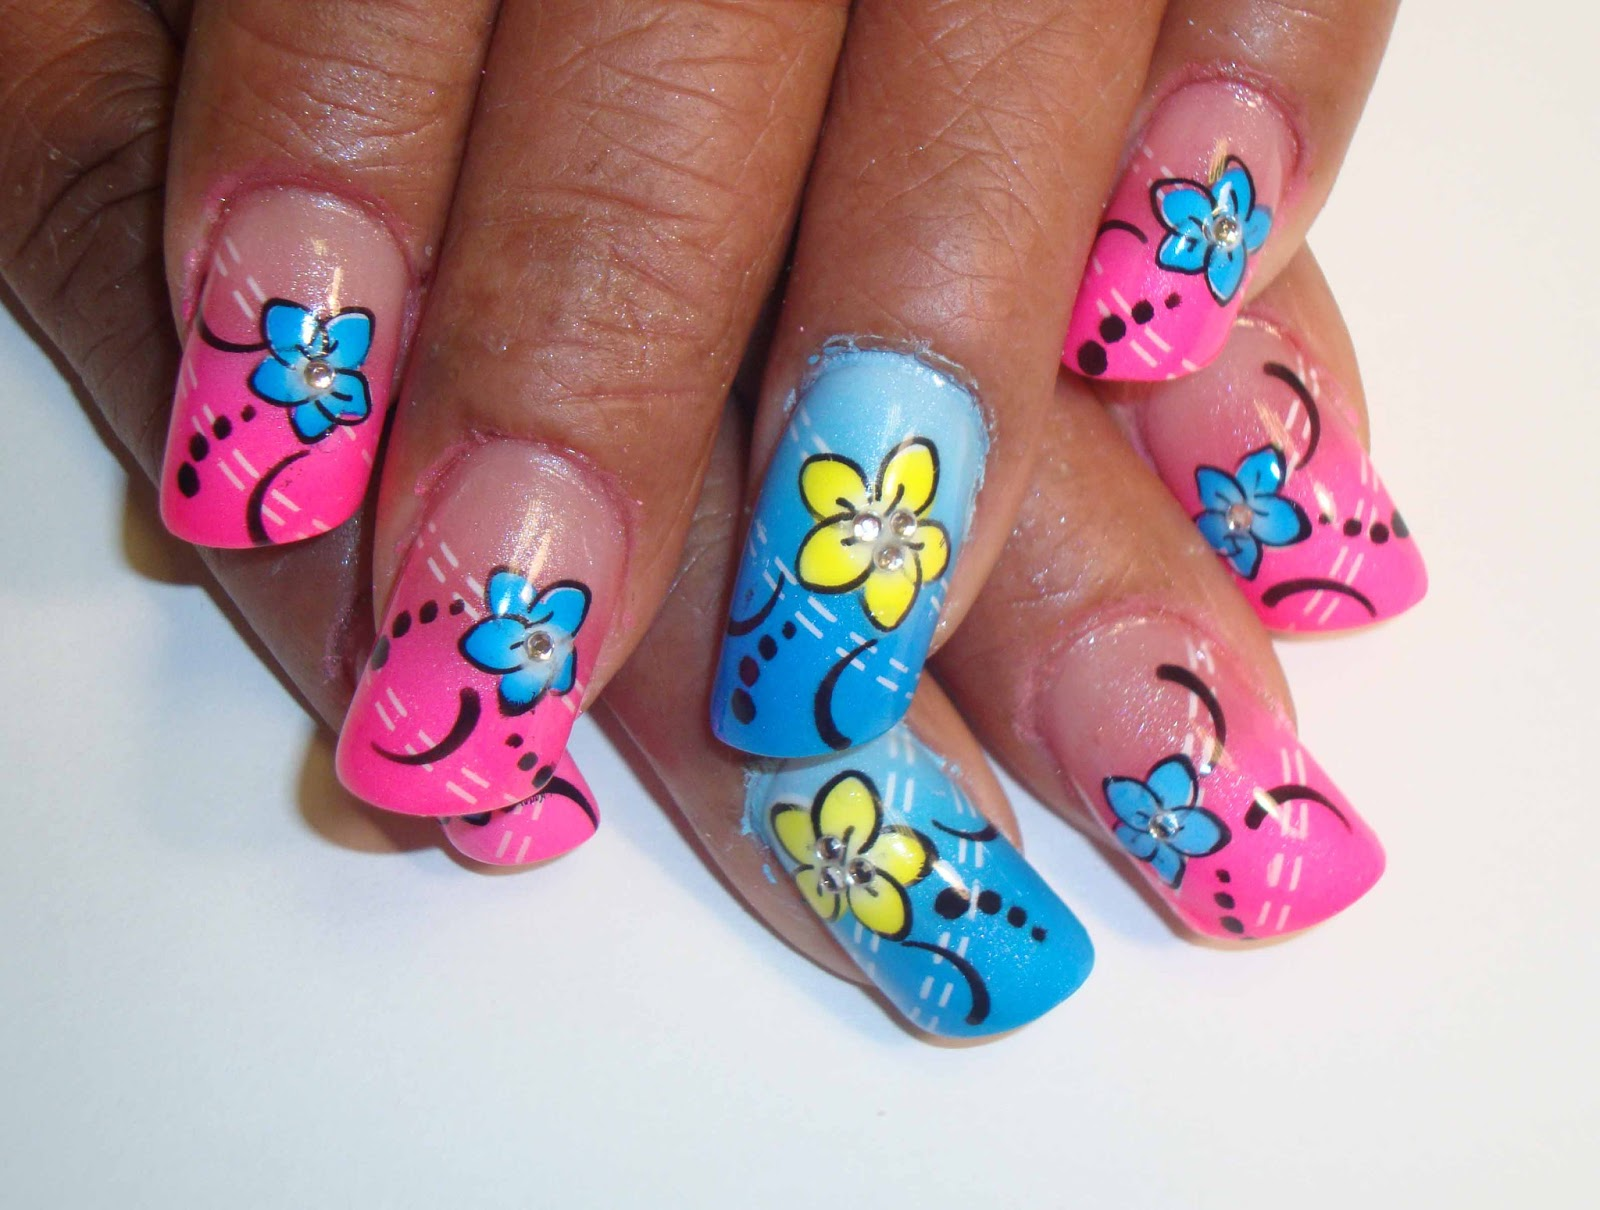 Flowers Nail Art Designs | Nail Art Fashion for Women | New Designs of ...